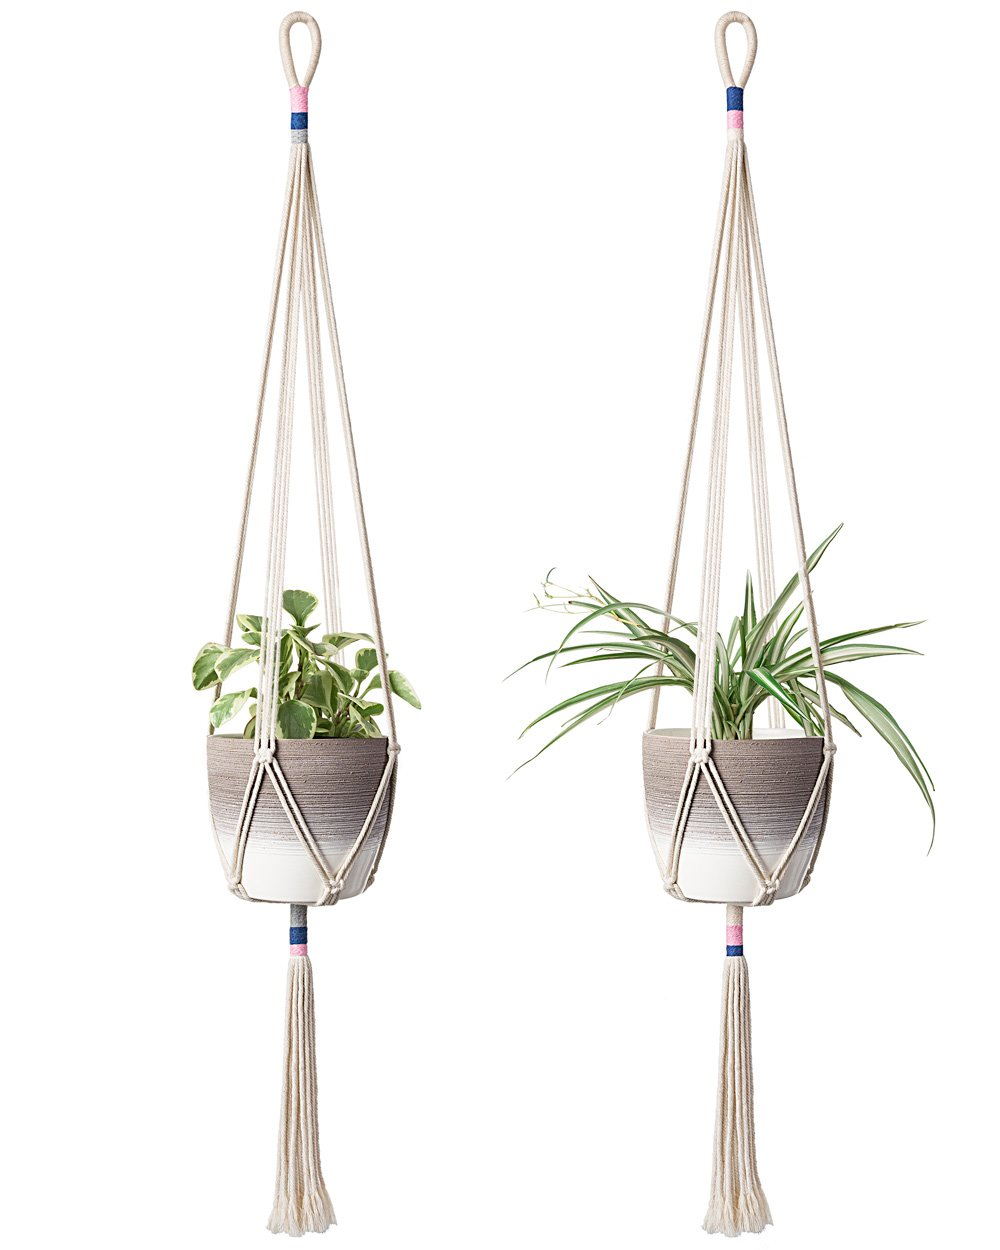 Mkono 2Pcs Macrame Plant Hanger Hanging Planter Color Basket Cotton Rope, 43 Inch